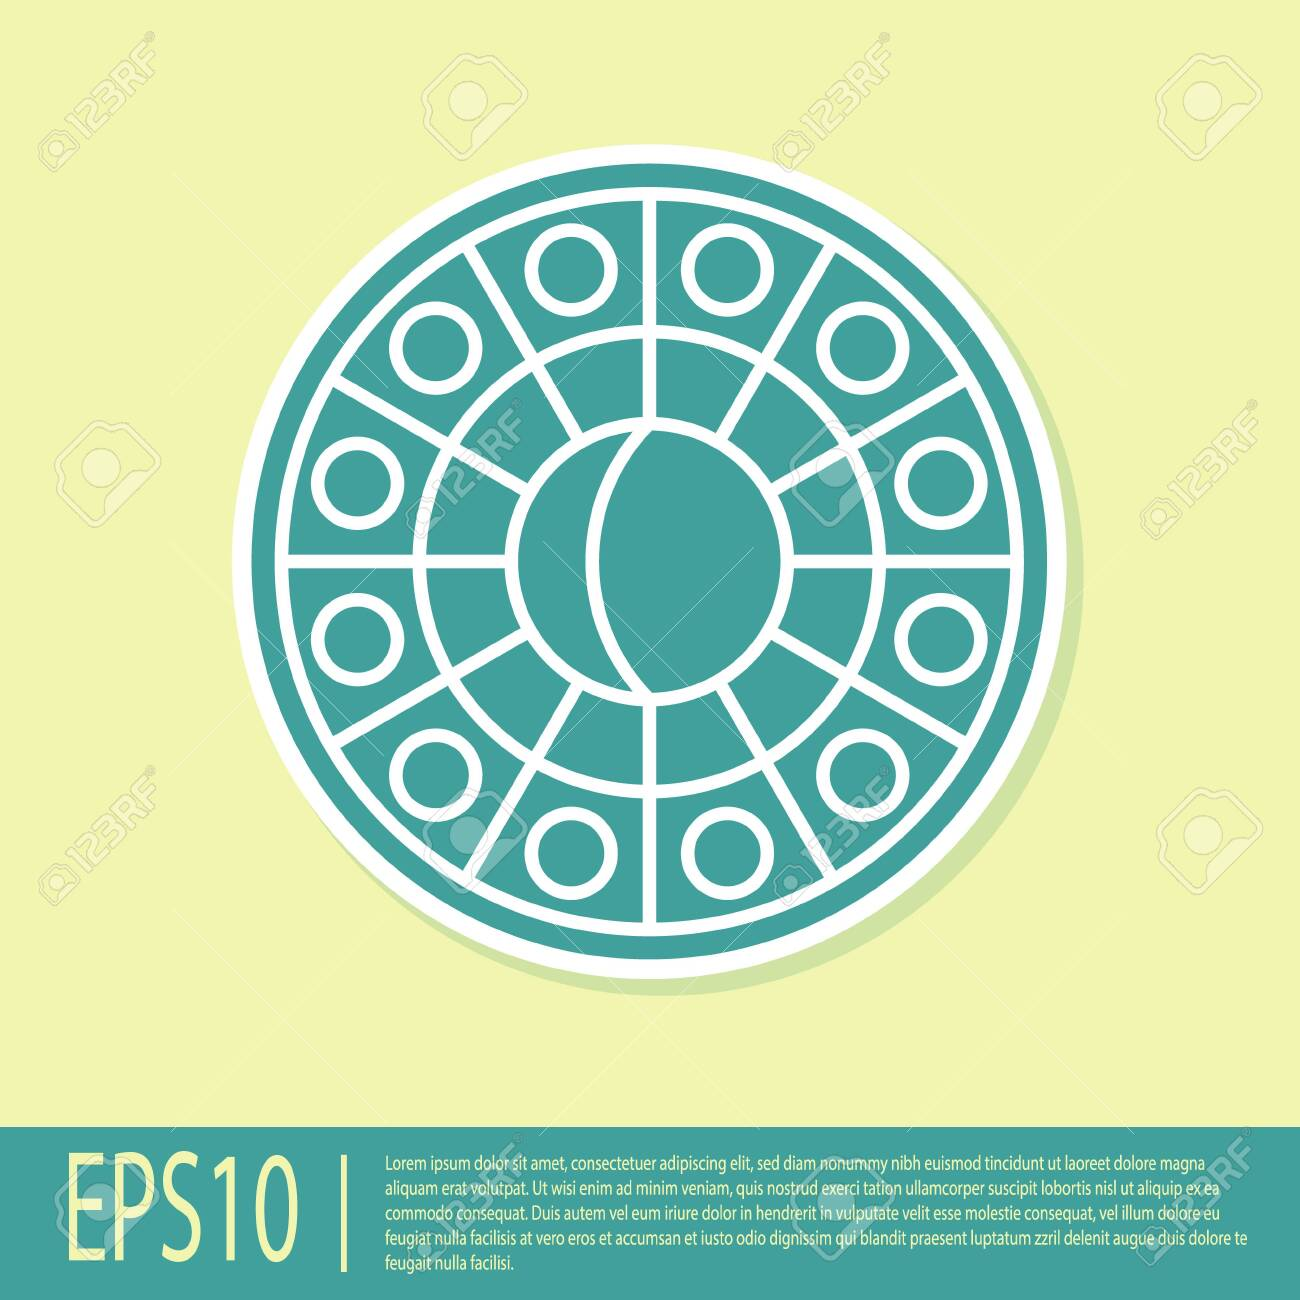 Green Astrology Horoscope Circle With Zodiac Icon Isolated On Royalty Free Cliparts Vectors And Stock Illustration Image 138334591